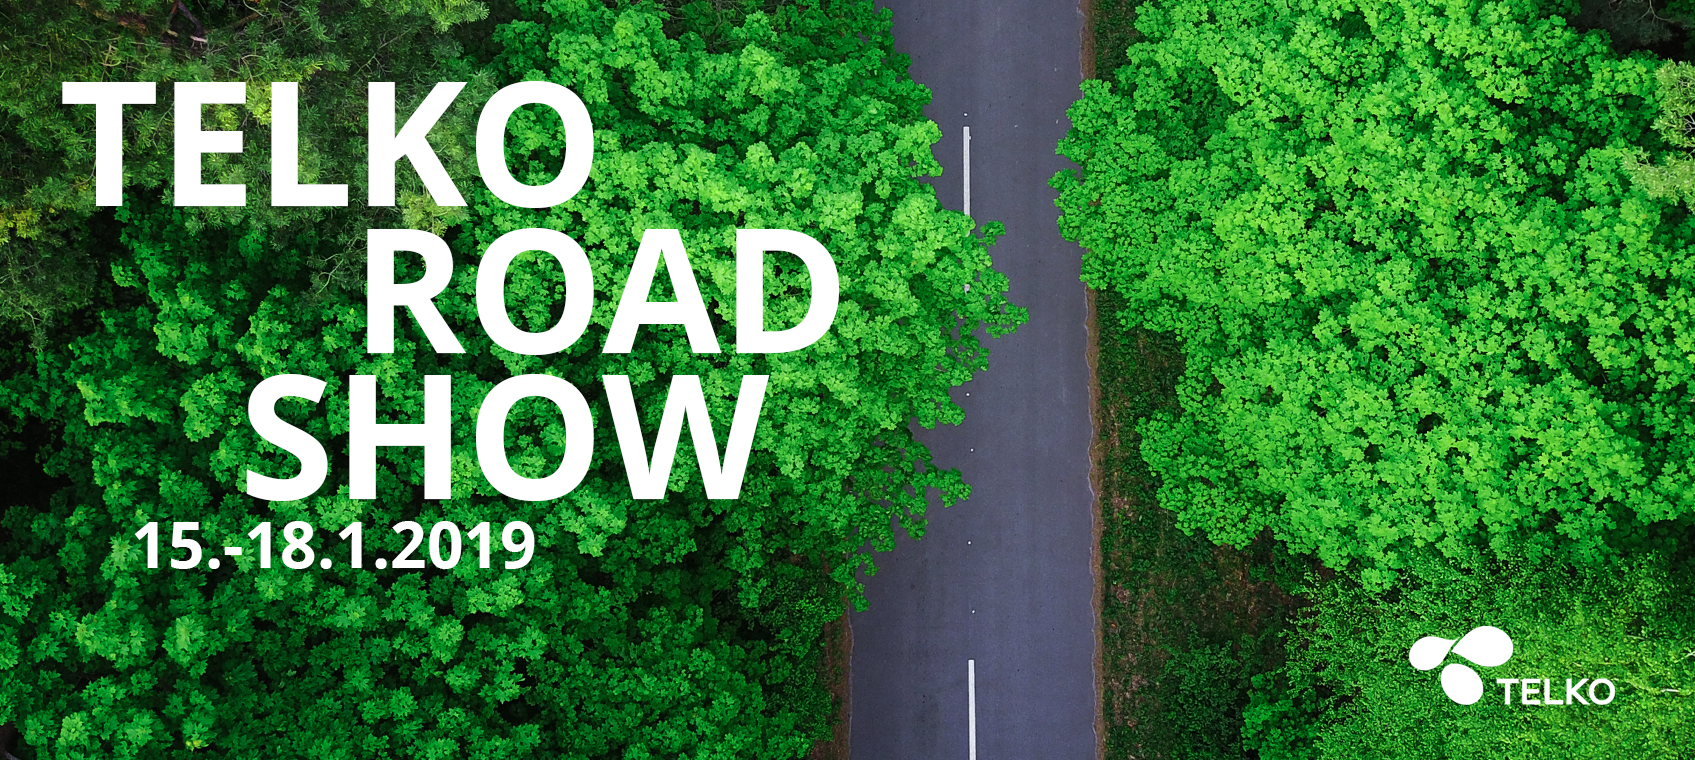 Telko_Road_show_2019_email_banner